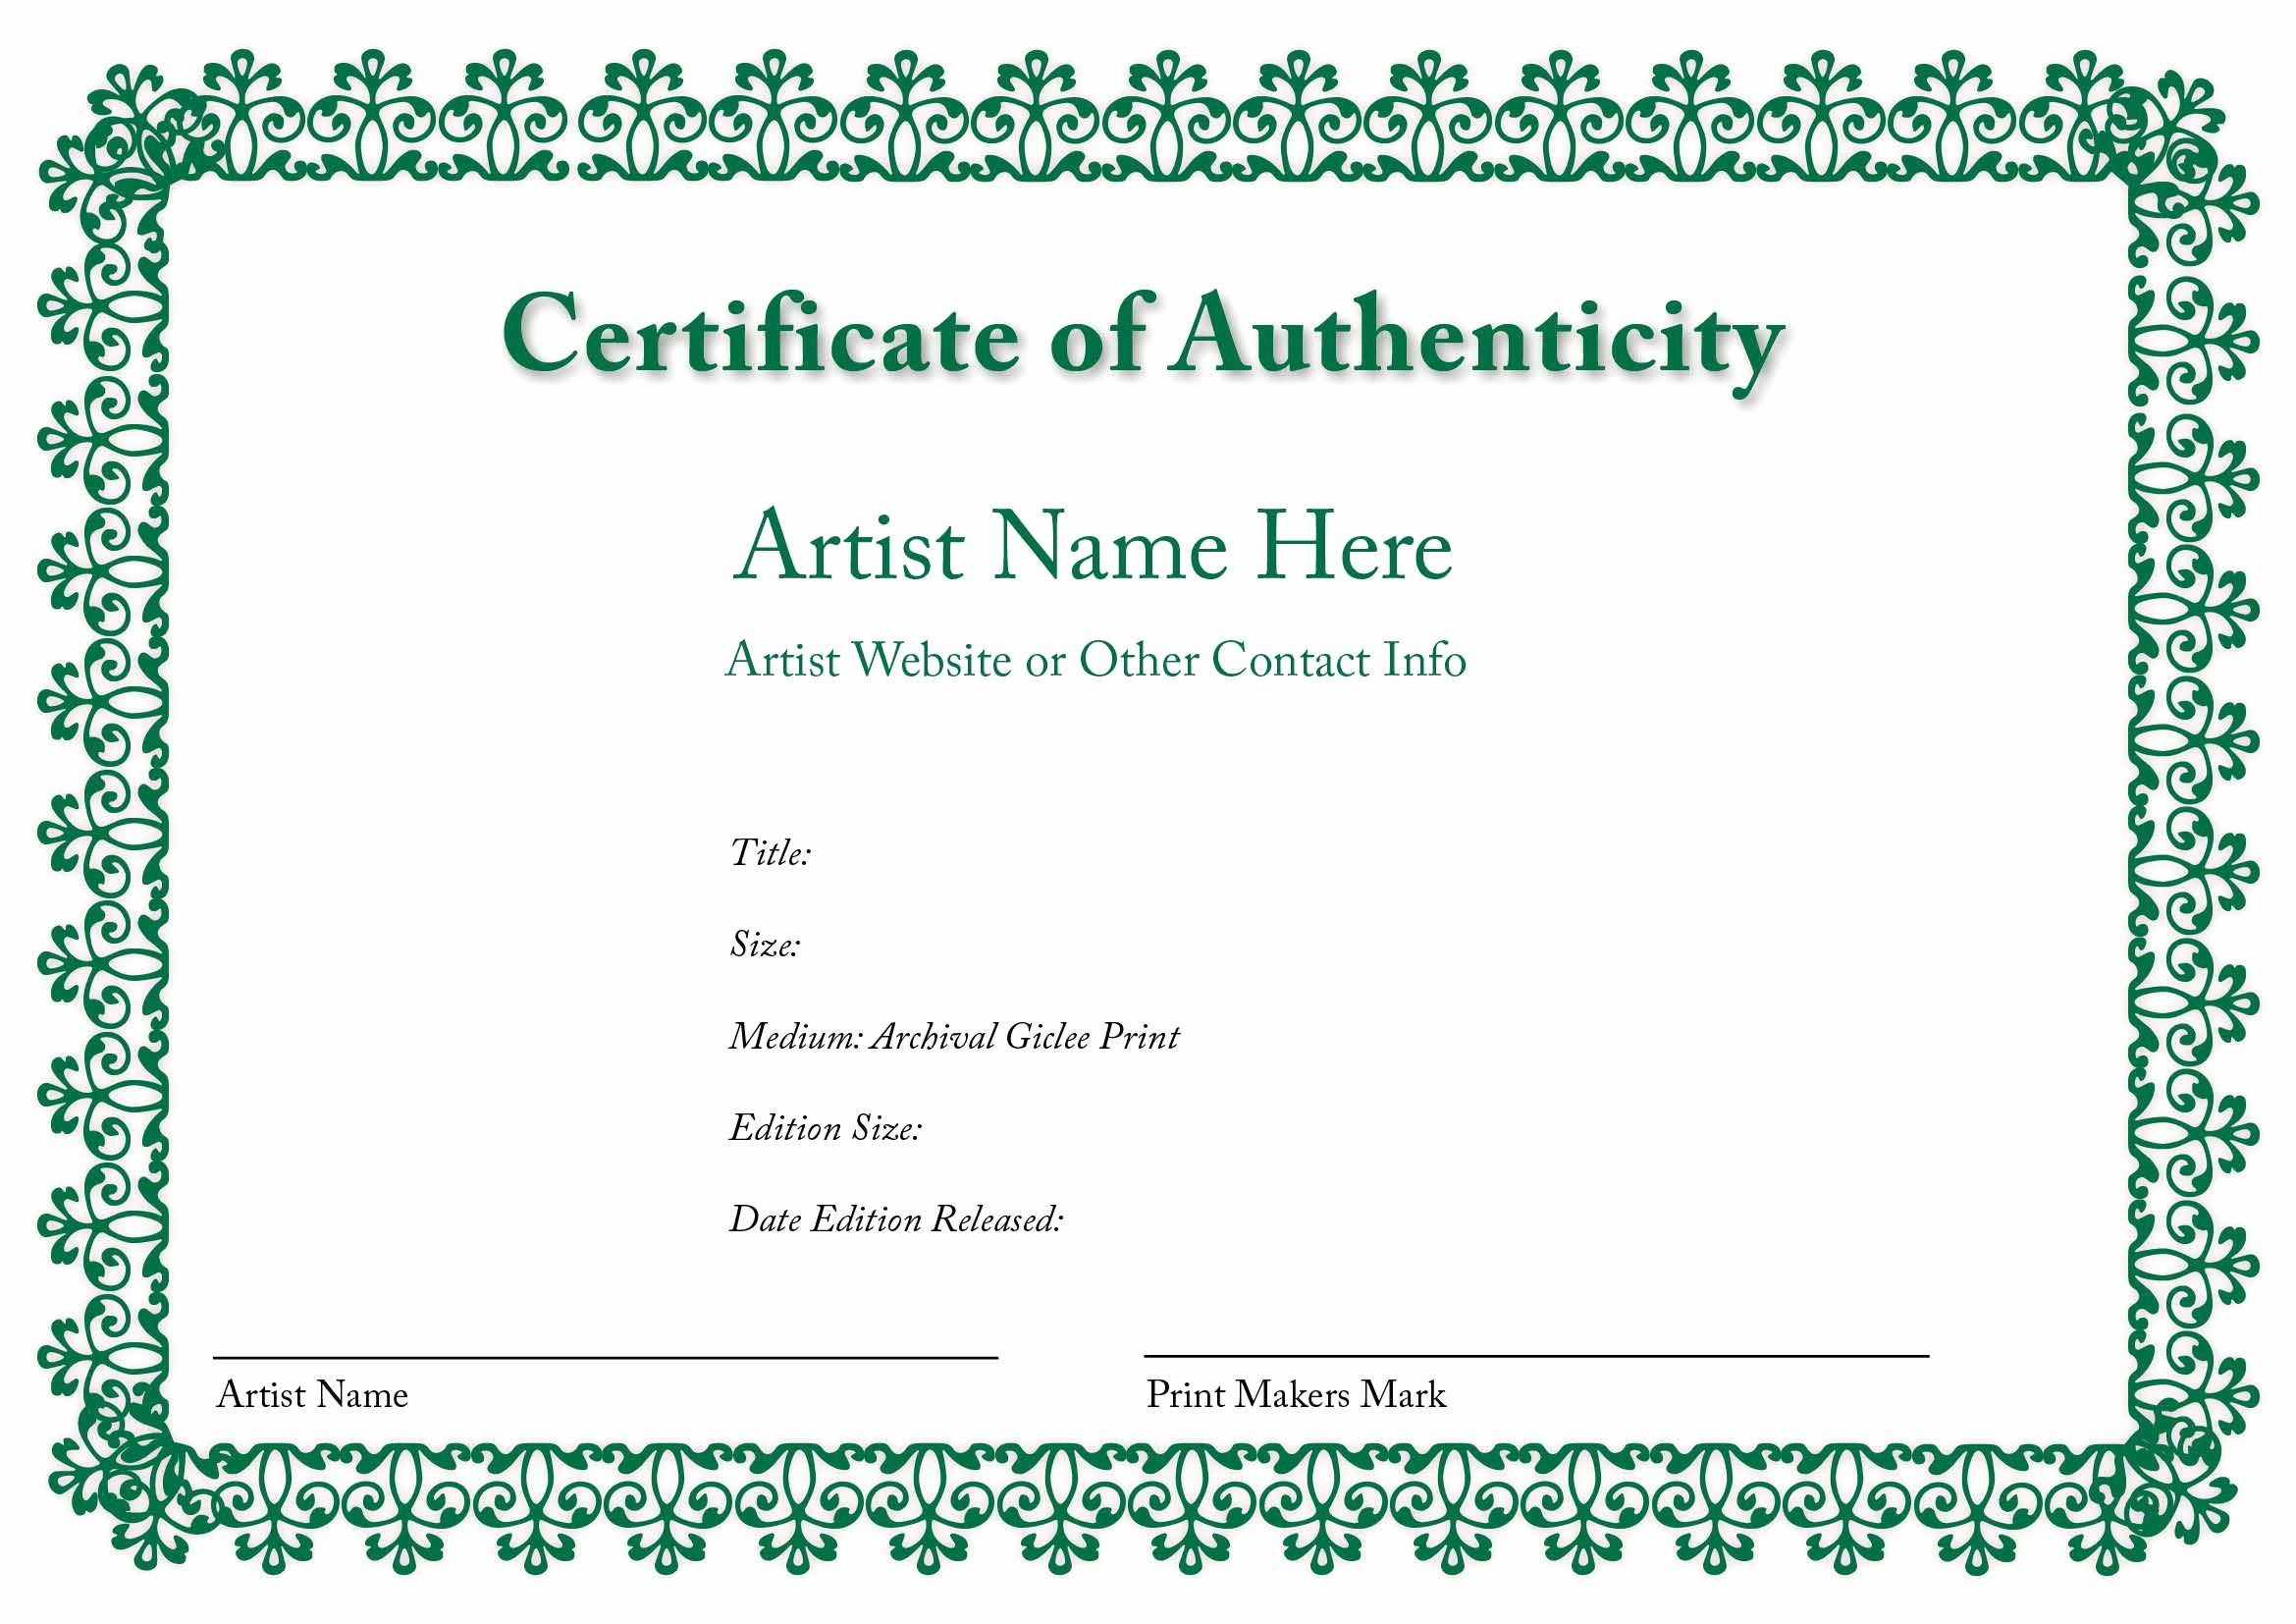 Certificate Of Authenticity Artwork Template Fresh Certificate Of Authenticity Of An Art Print